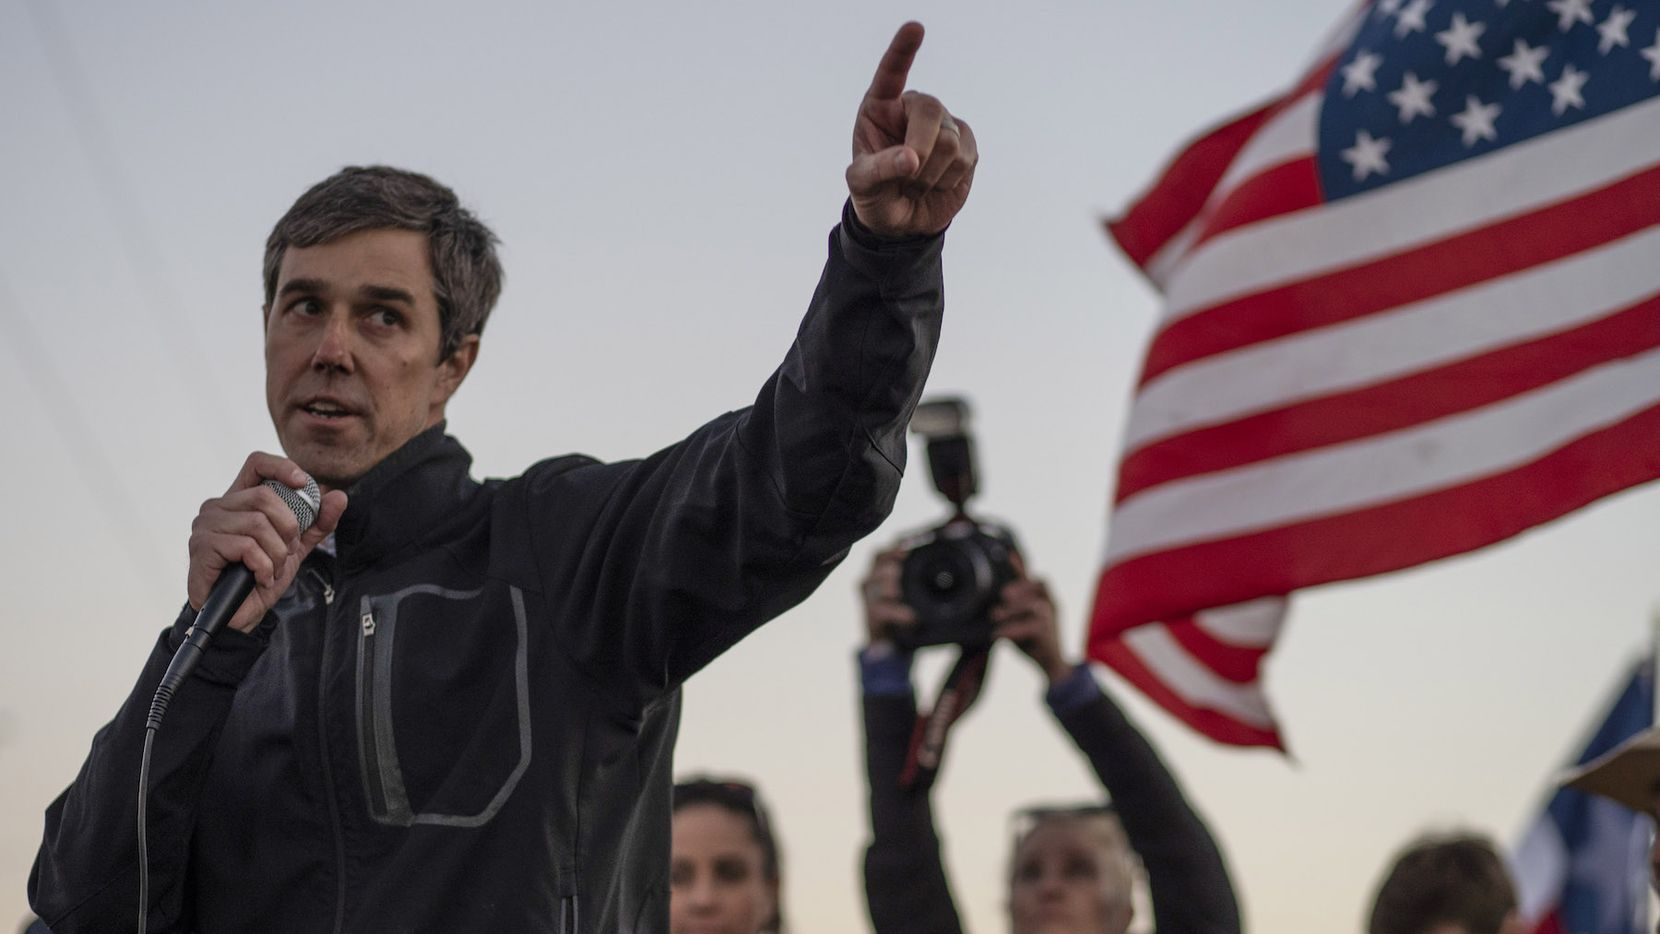 El ex congresista Beto O'Rourke de El Paso. (PAUL RATJE/AFP/Getty Images)